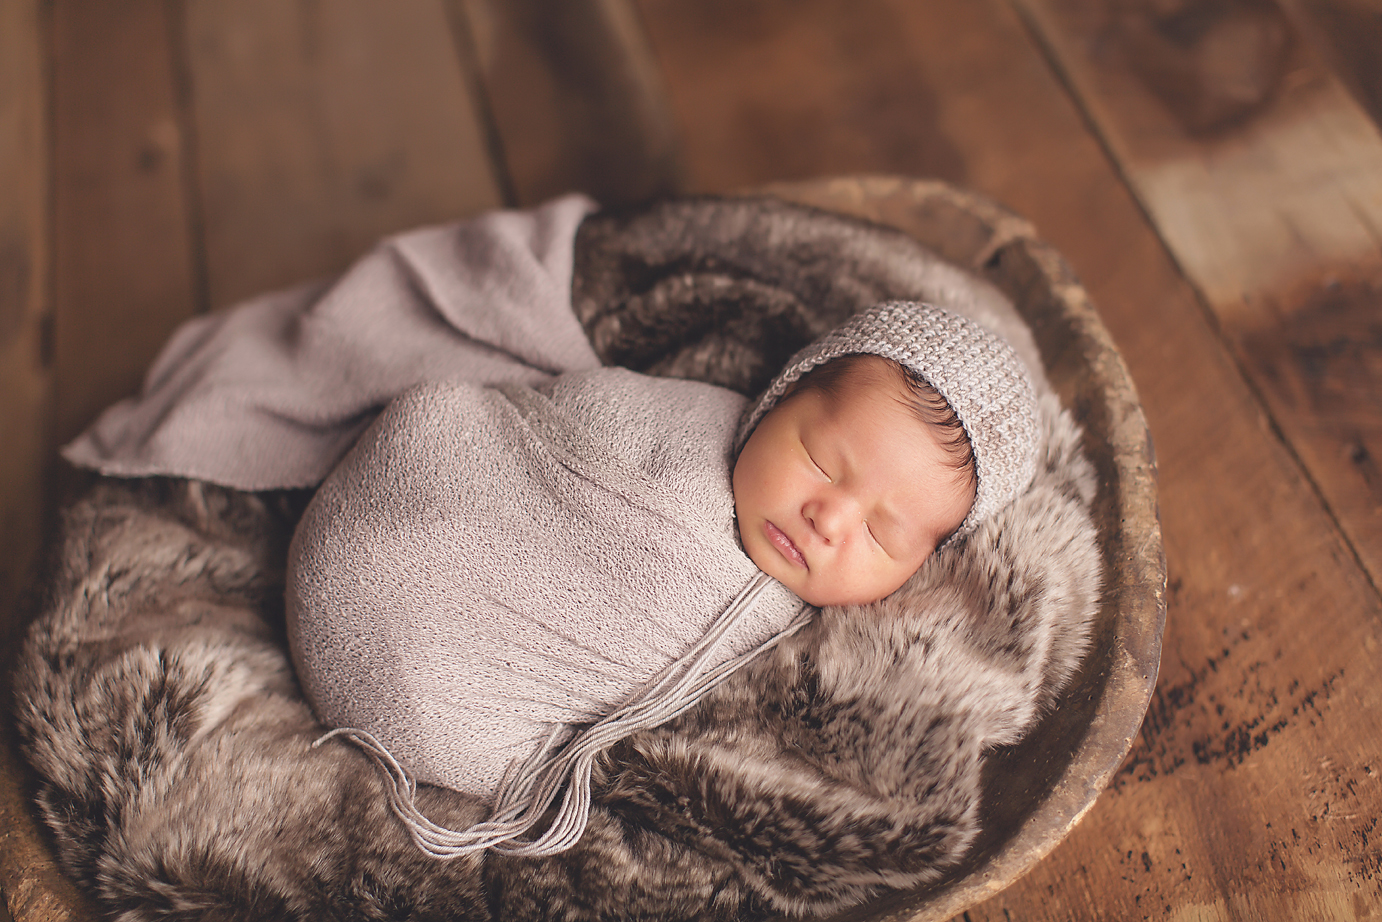 NEUTRAL BROWN AND GRAY NEWBORN PHOTOGRAPHY SESSION